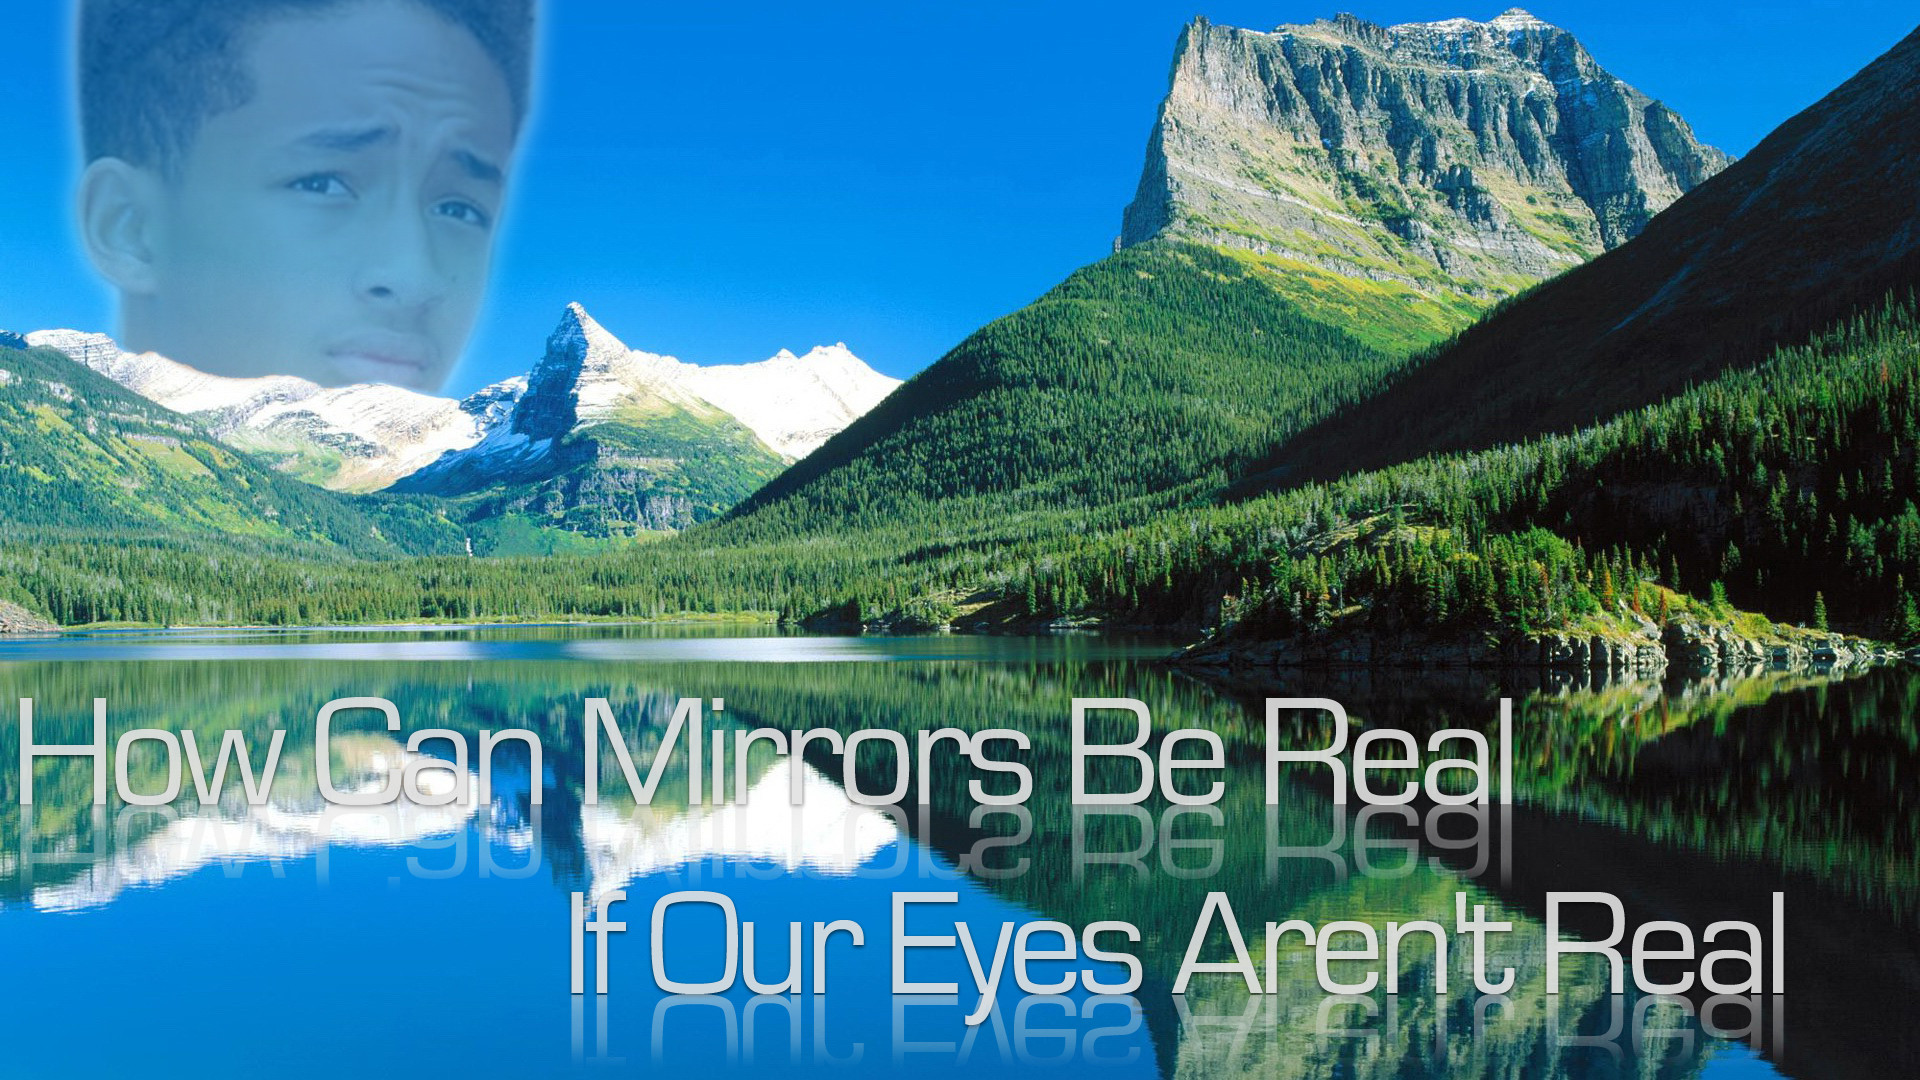 Image 648989 jaden smith know your meme ow can miprors be real nature mount scenery reflection wilderness water resources mountain water sky voltagebd Choice Image